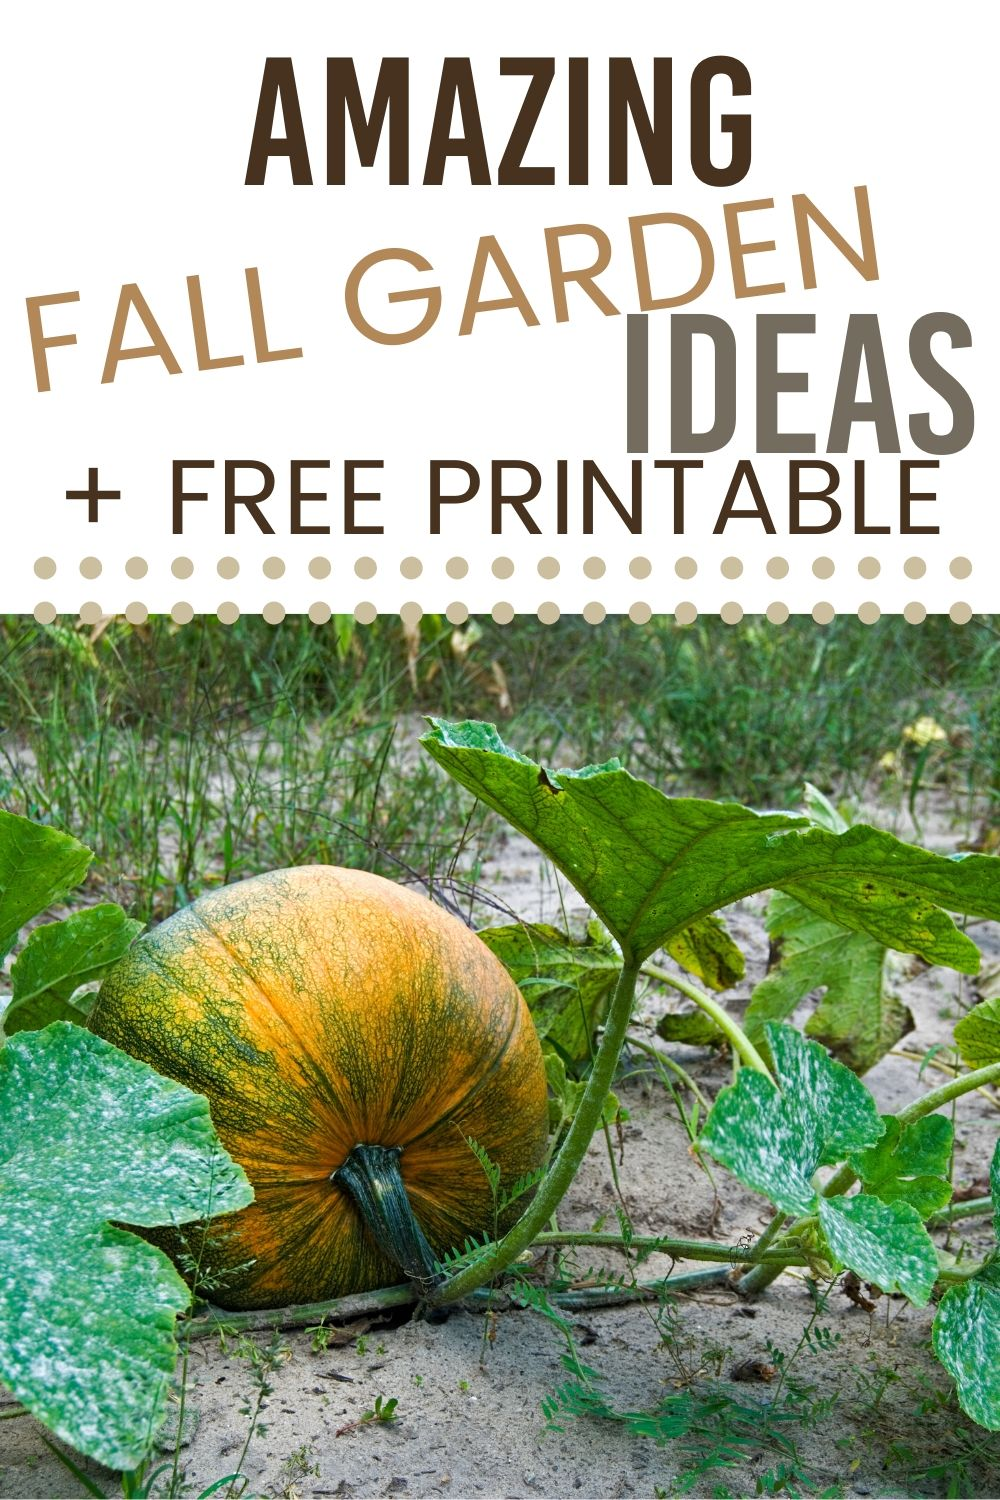 Bring your garden to the next level with some fall garden ideas. Extend your vegetable growing season with a fall garden. #garden #fallgarden #gardening #fallgardening via @homebyjenn